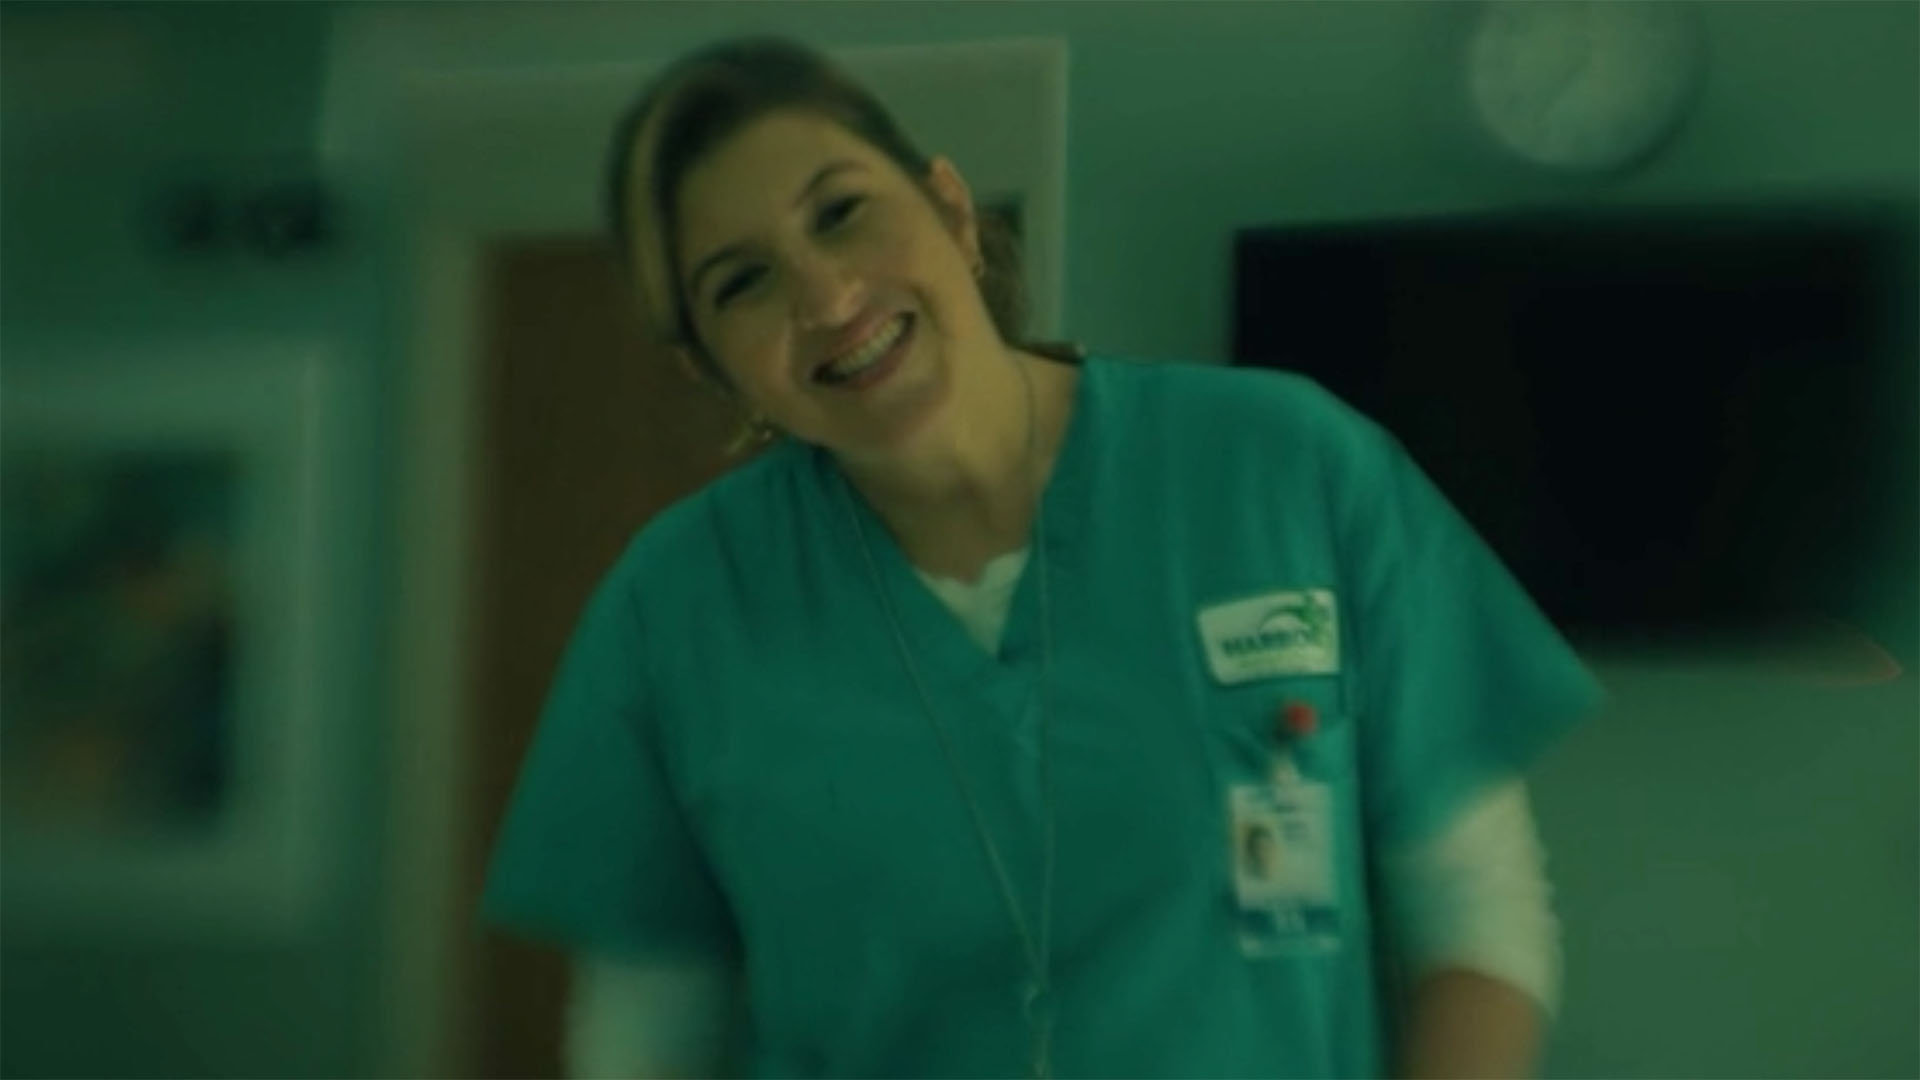 Tara Summers as Nurse Linda Bloch